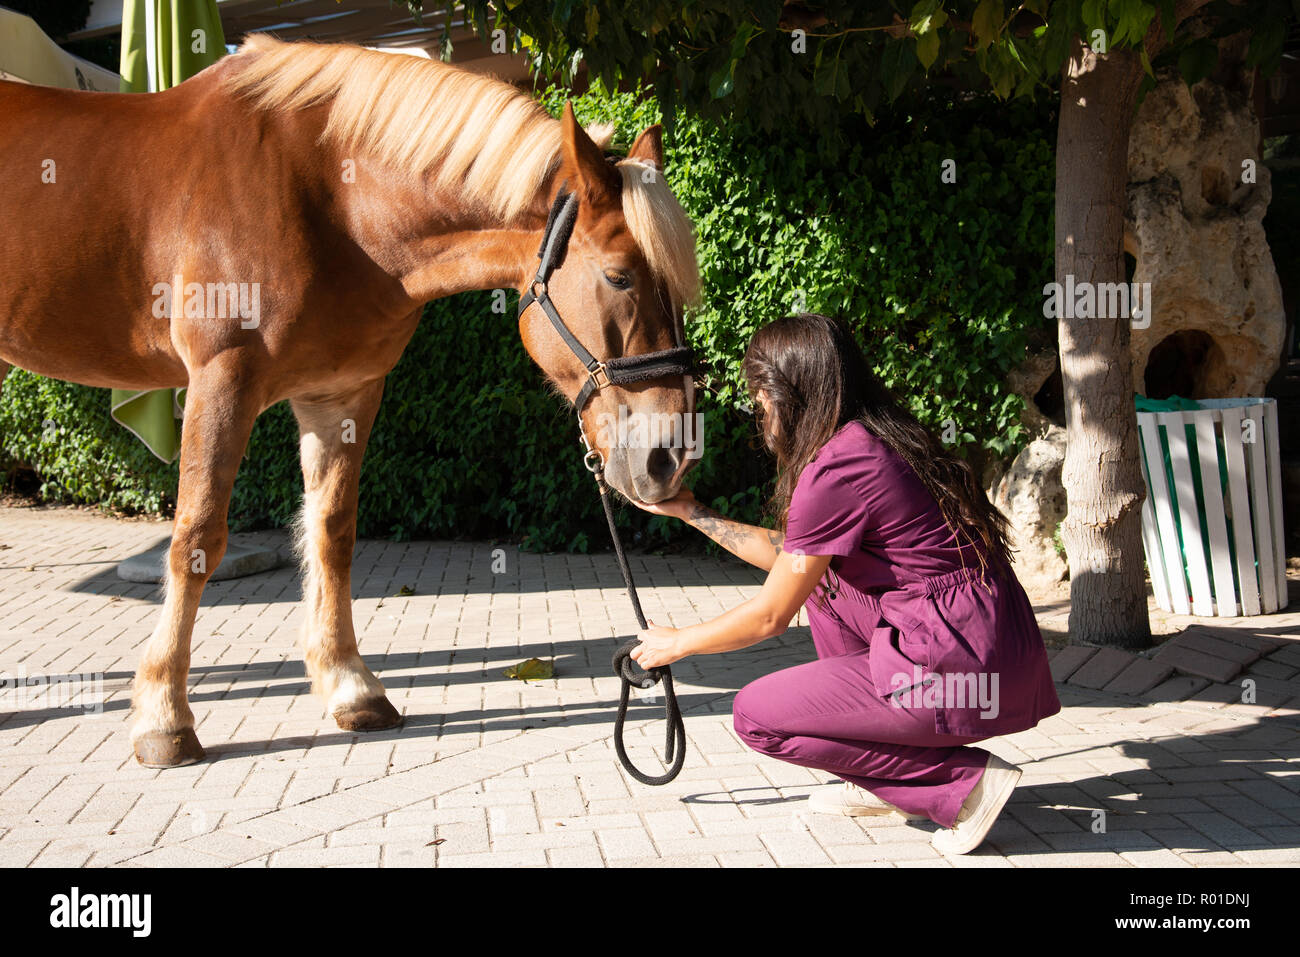 Young female veterinarian doctor attending a brown horse outdoor. Equestrian healthcare medical concept. - Stock Image